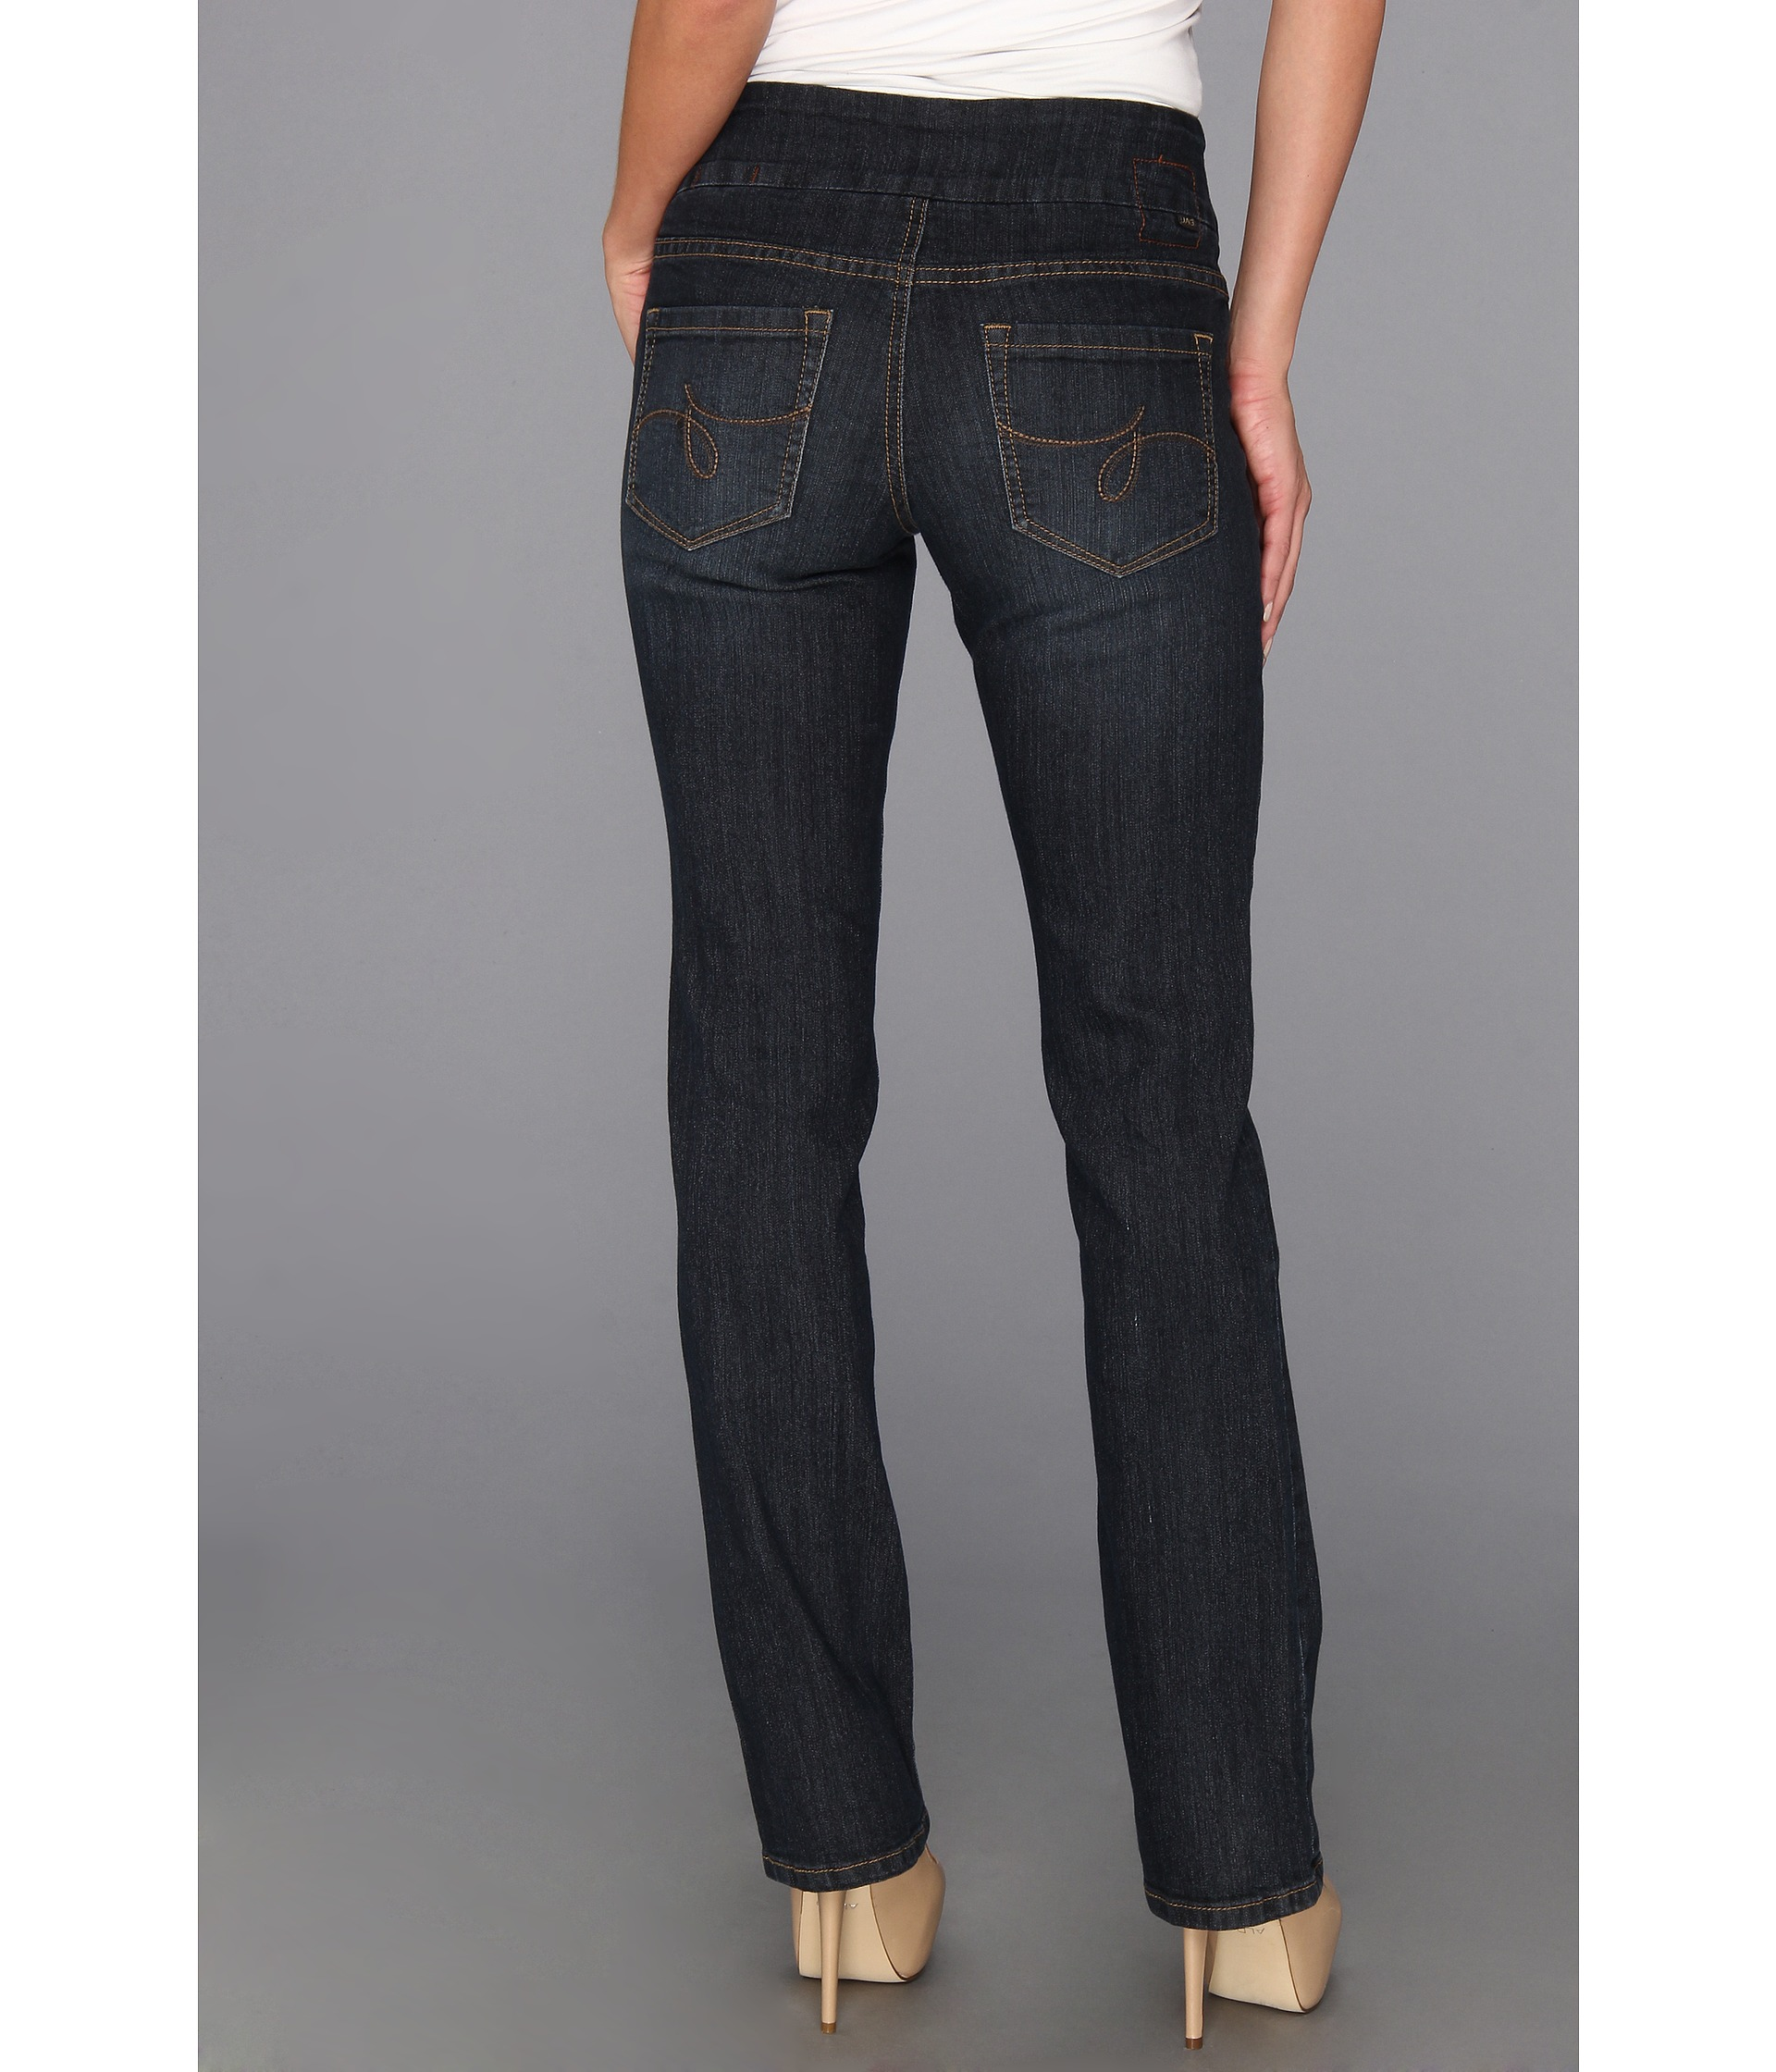 Jag Jeans Paley Bootcut in Atlantic Blue - Zappos.com Free Shipping BOTH Ways